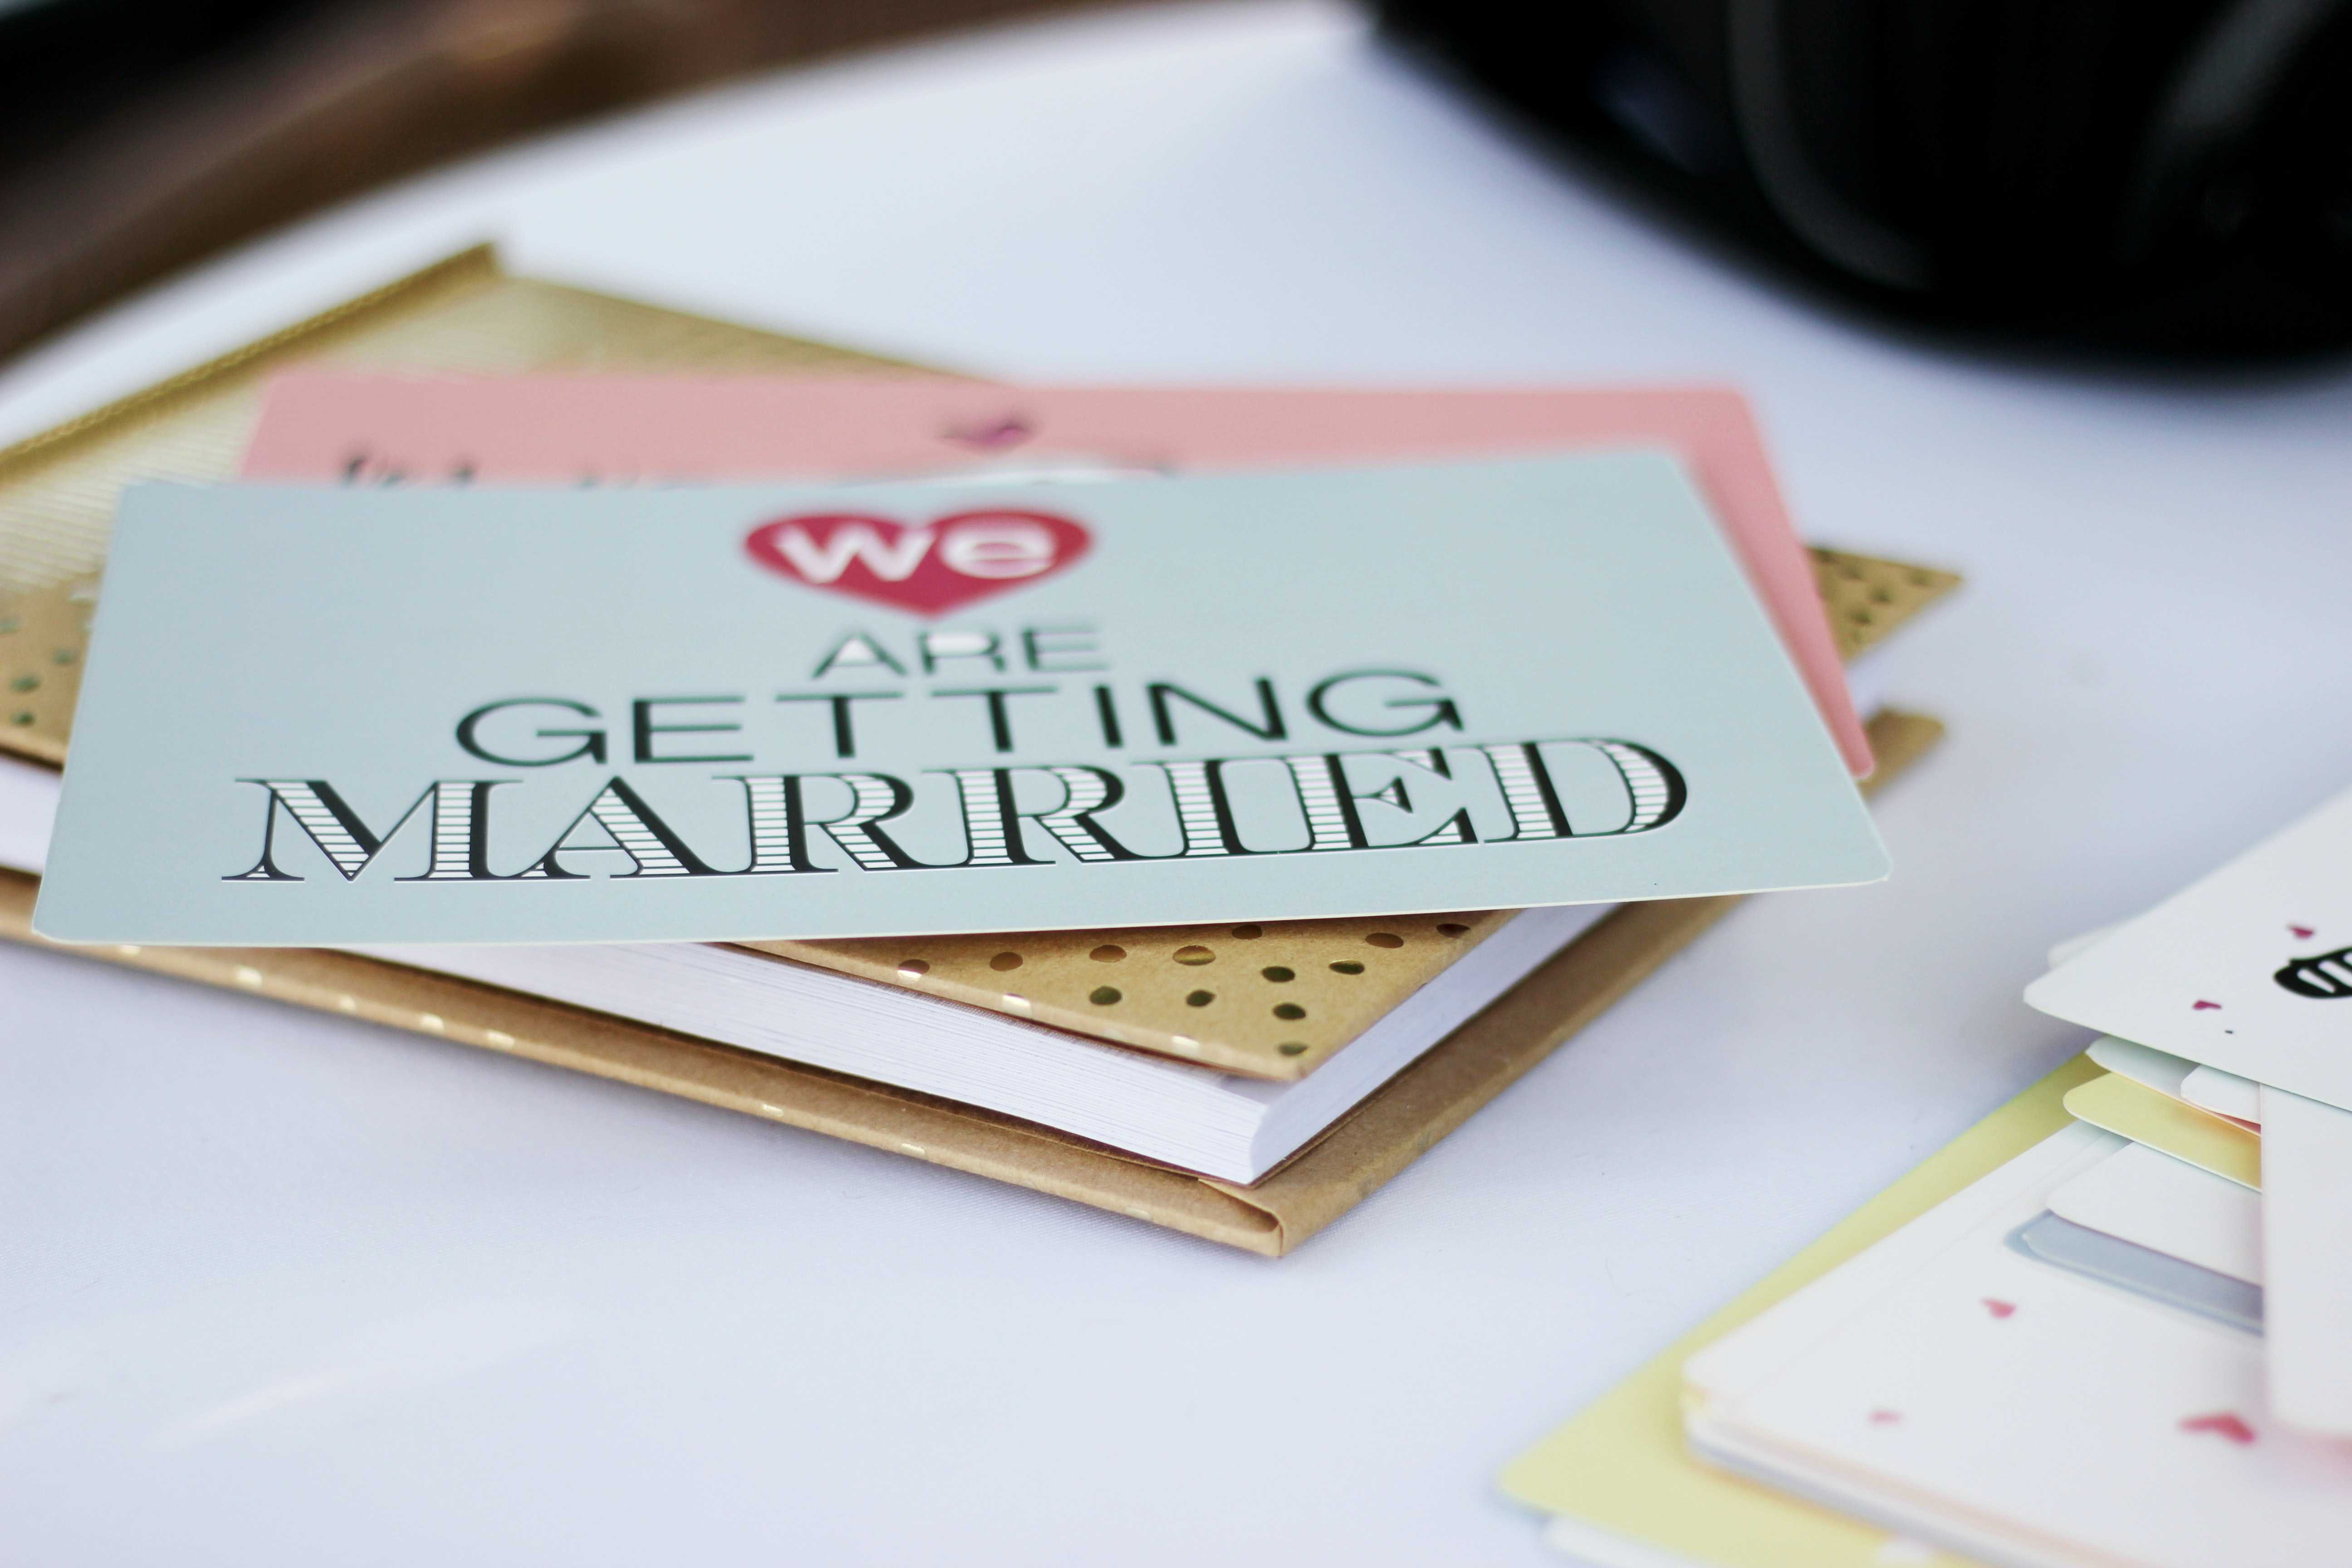 wedding planner that says we are getting married